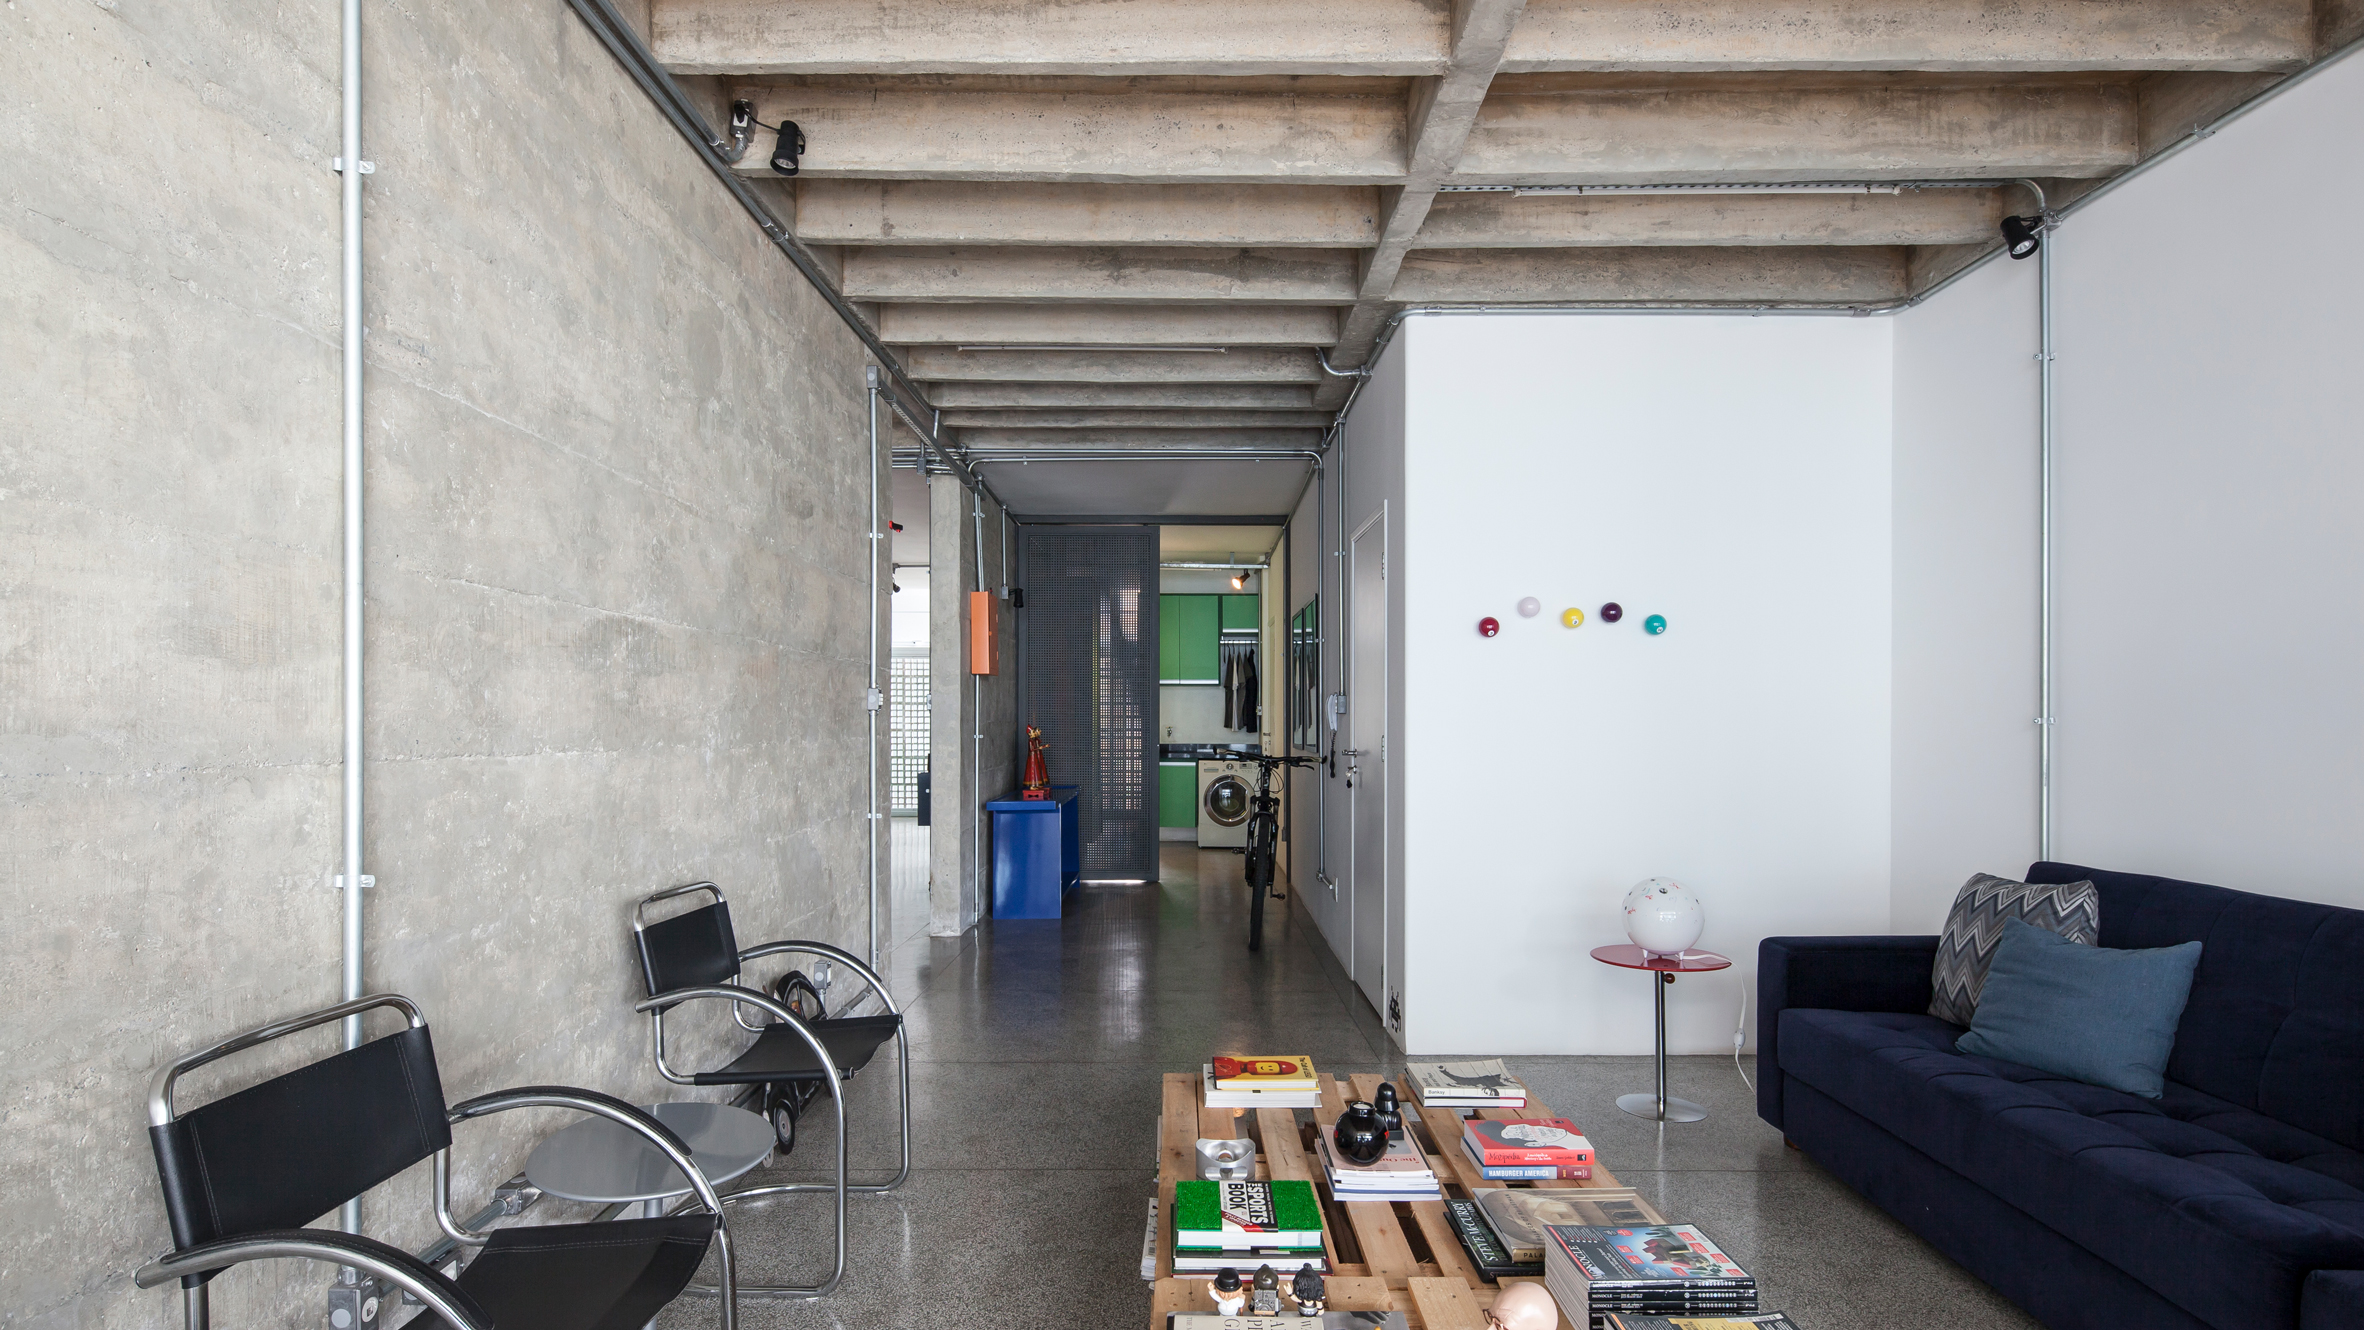 '60s apartment with concrete walls